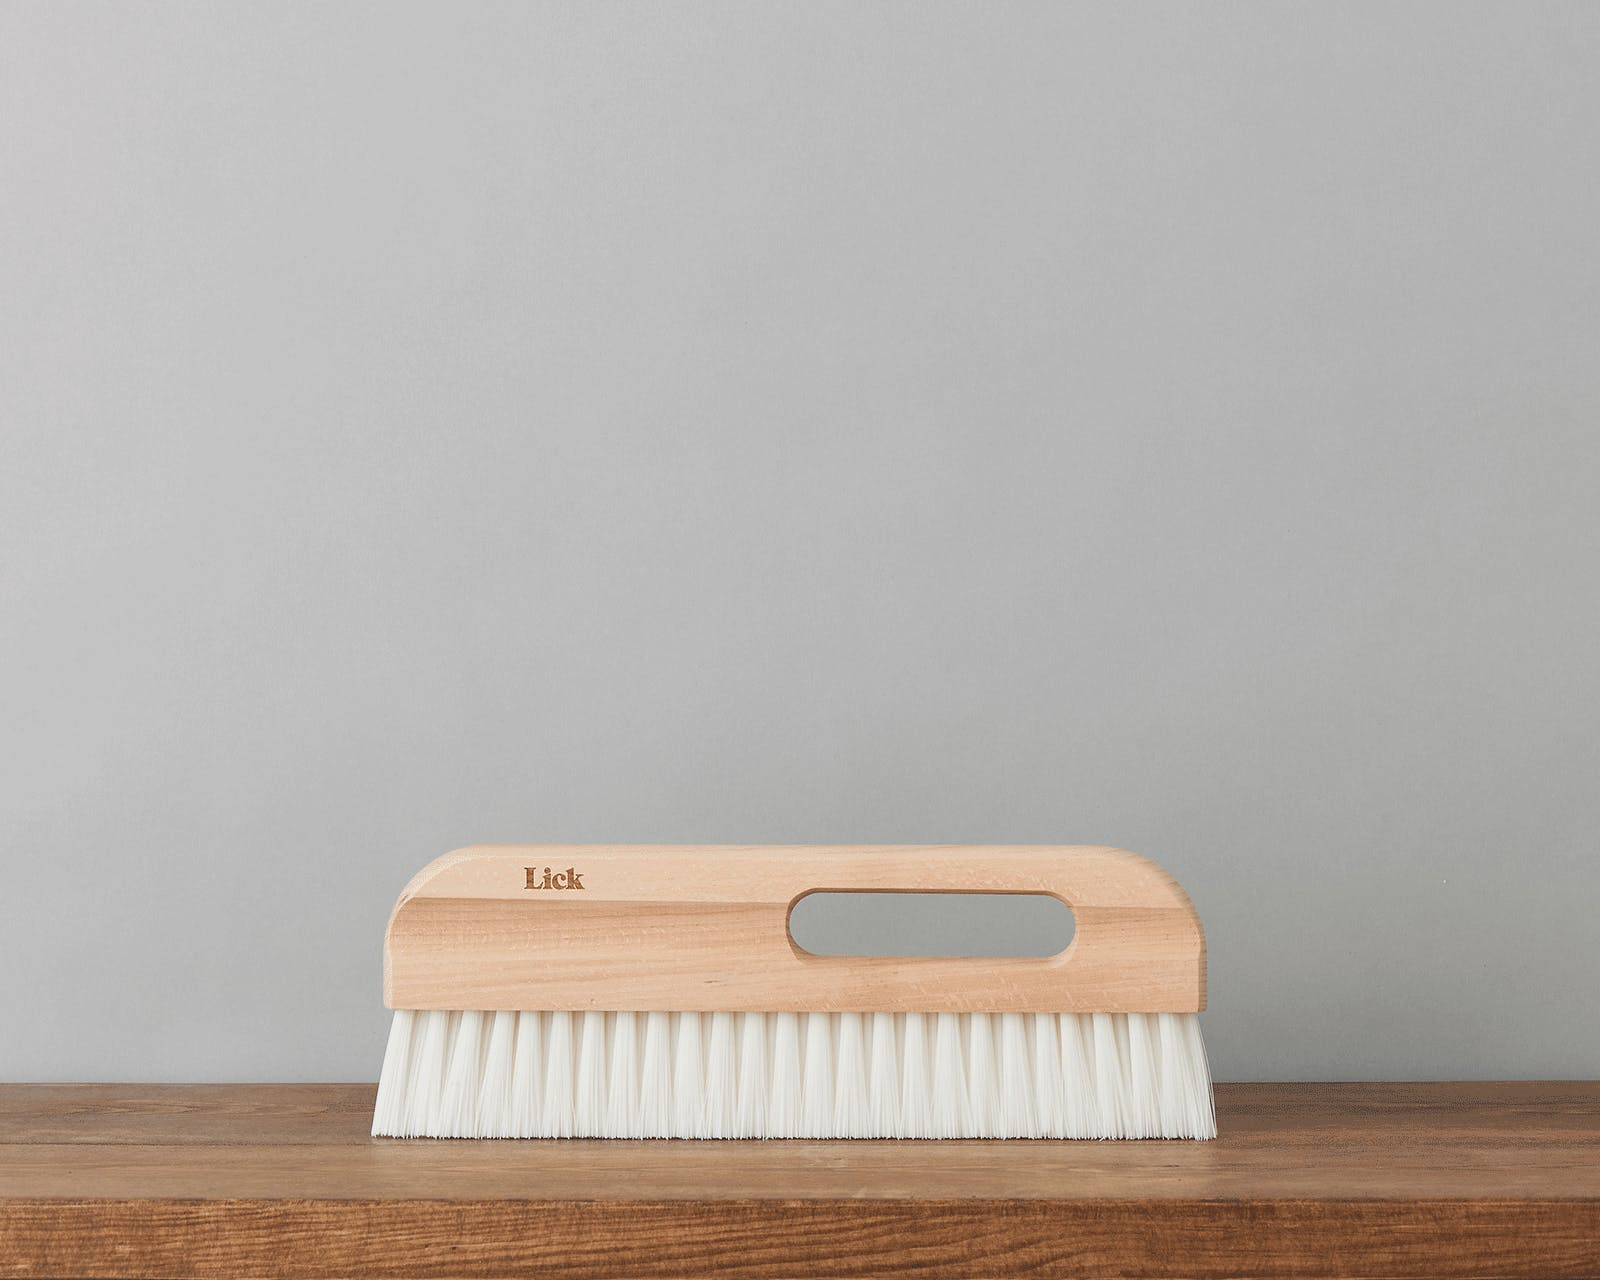 An image of the Lick wallpaper brush eco supplies against a grey background